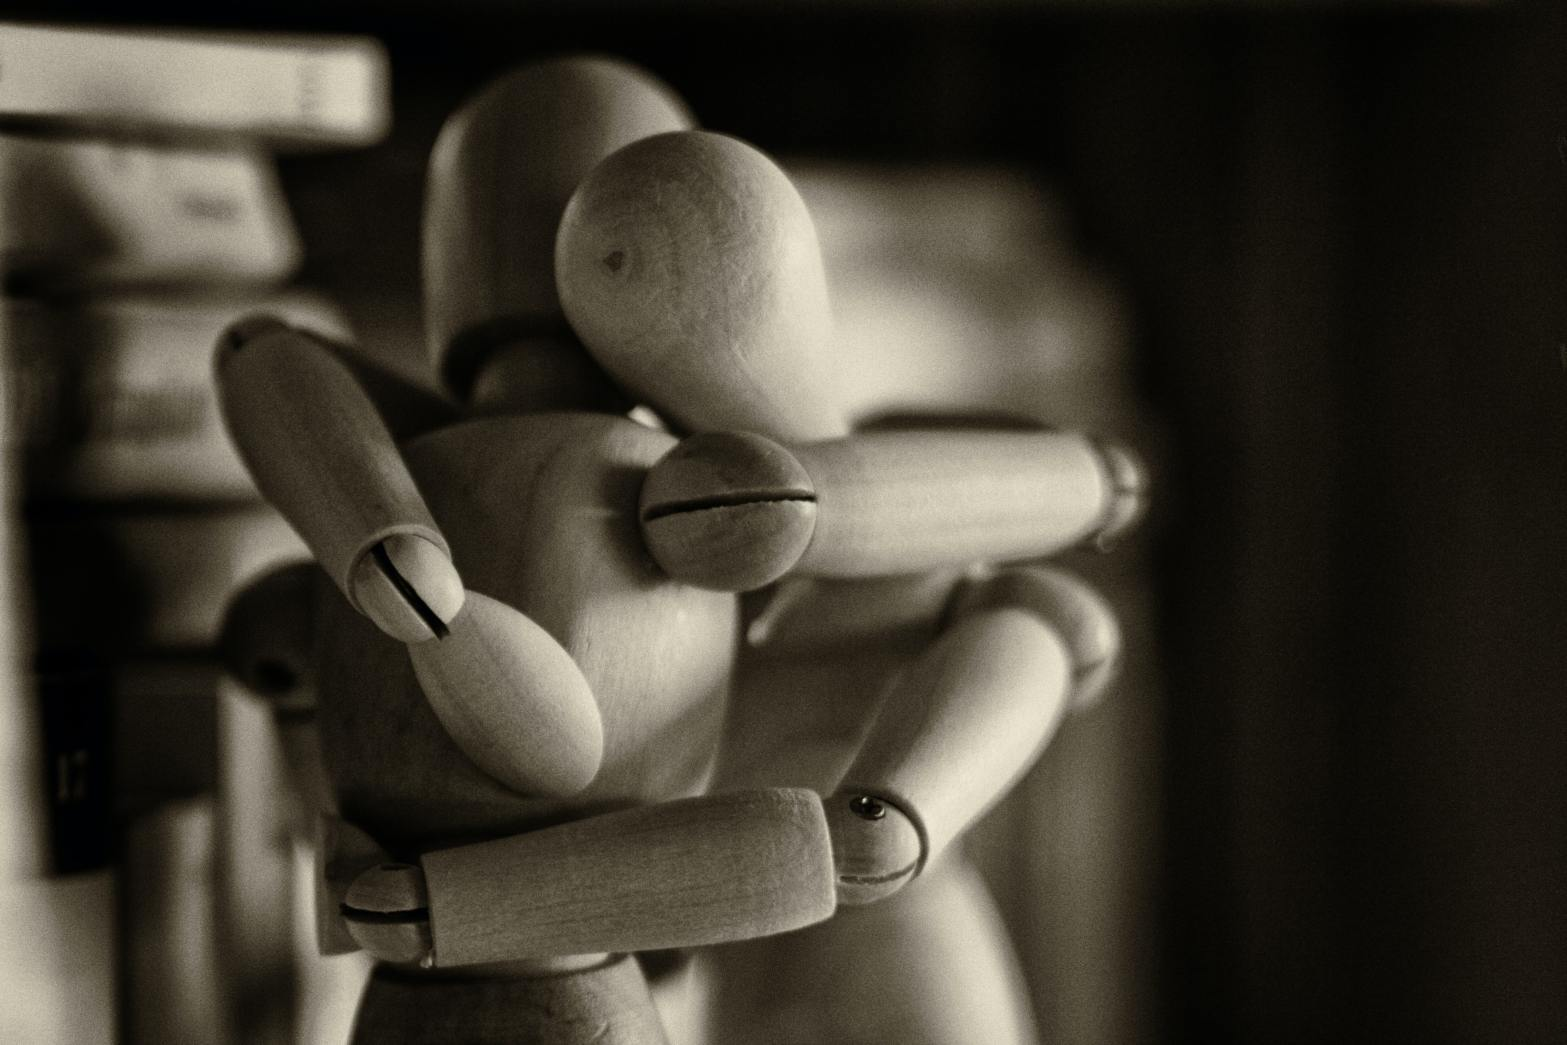 Black and white photo of two wooden art manikins embracing. Source: https://unsplash.com/photos/vzFTmxTl0DQ